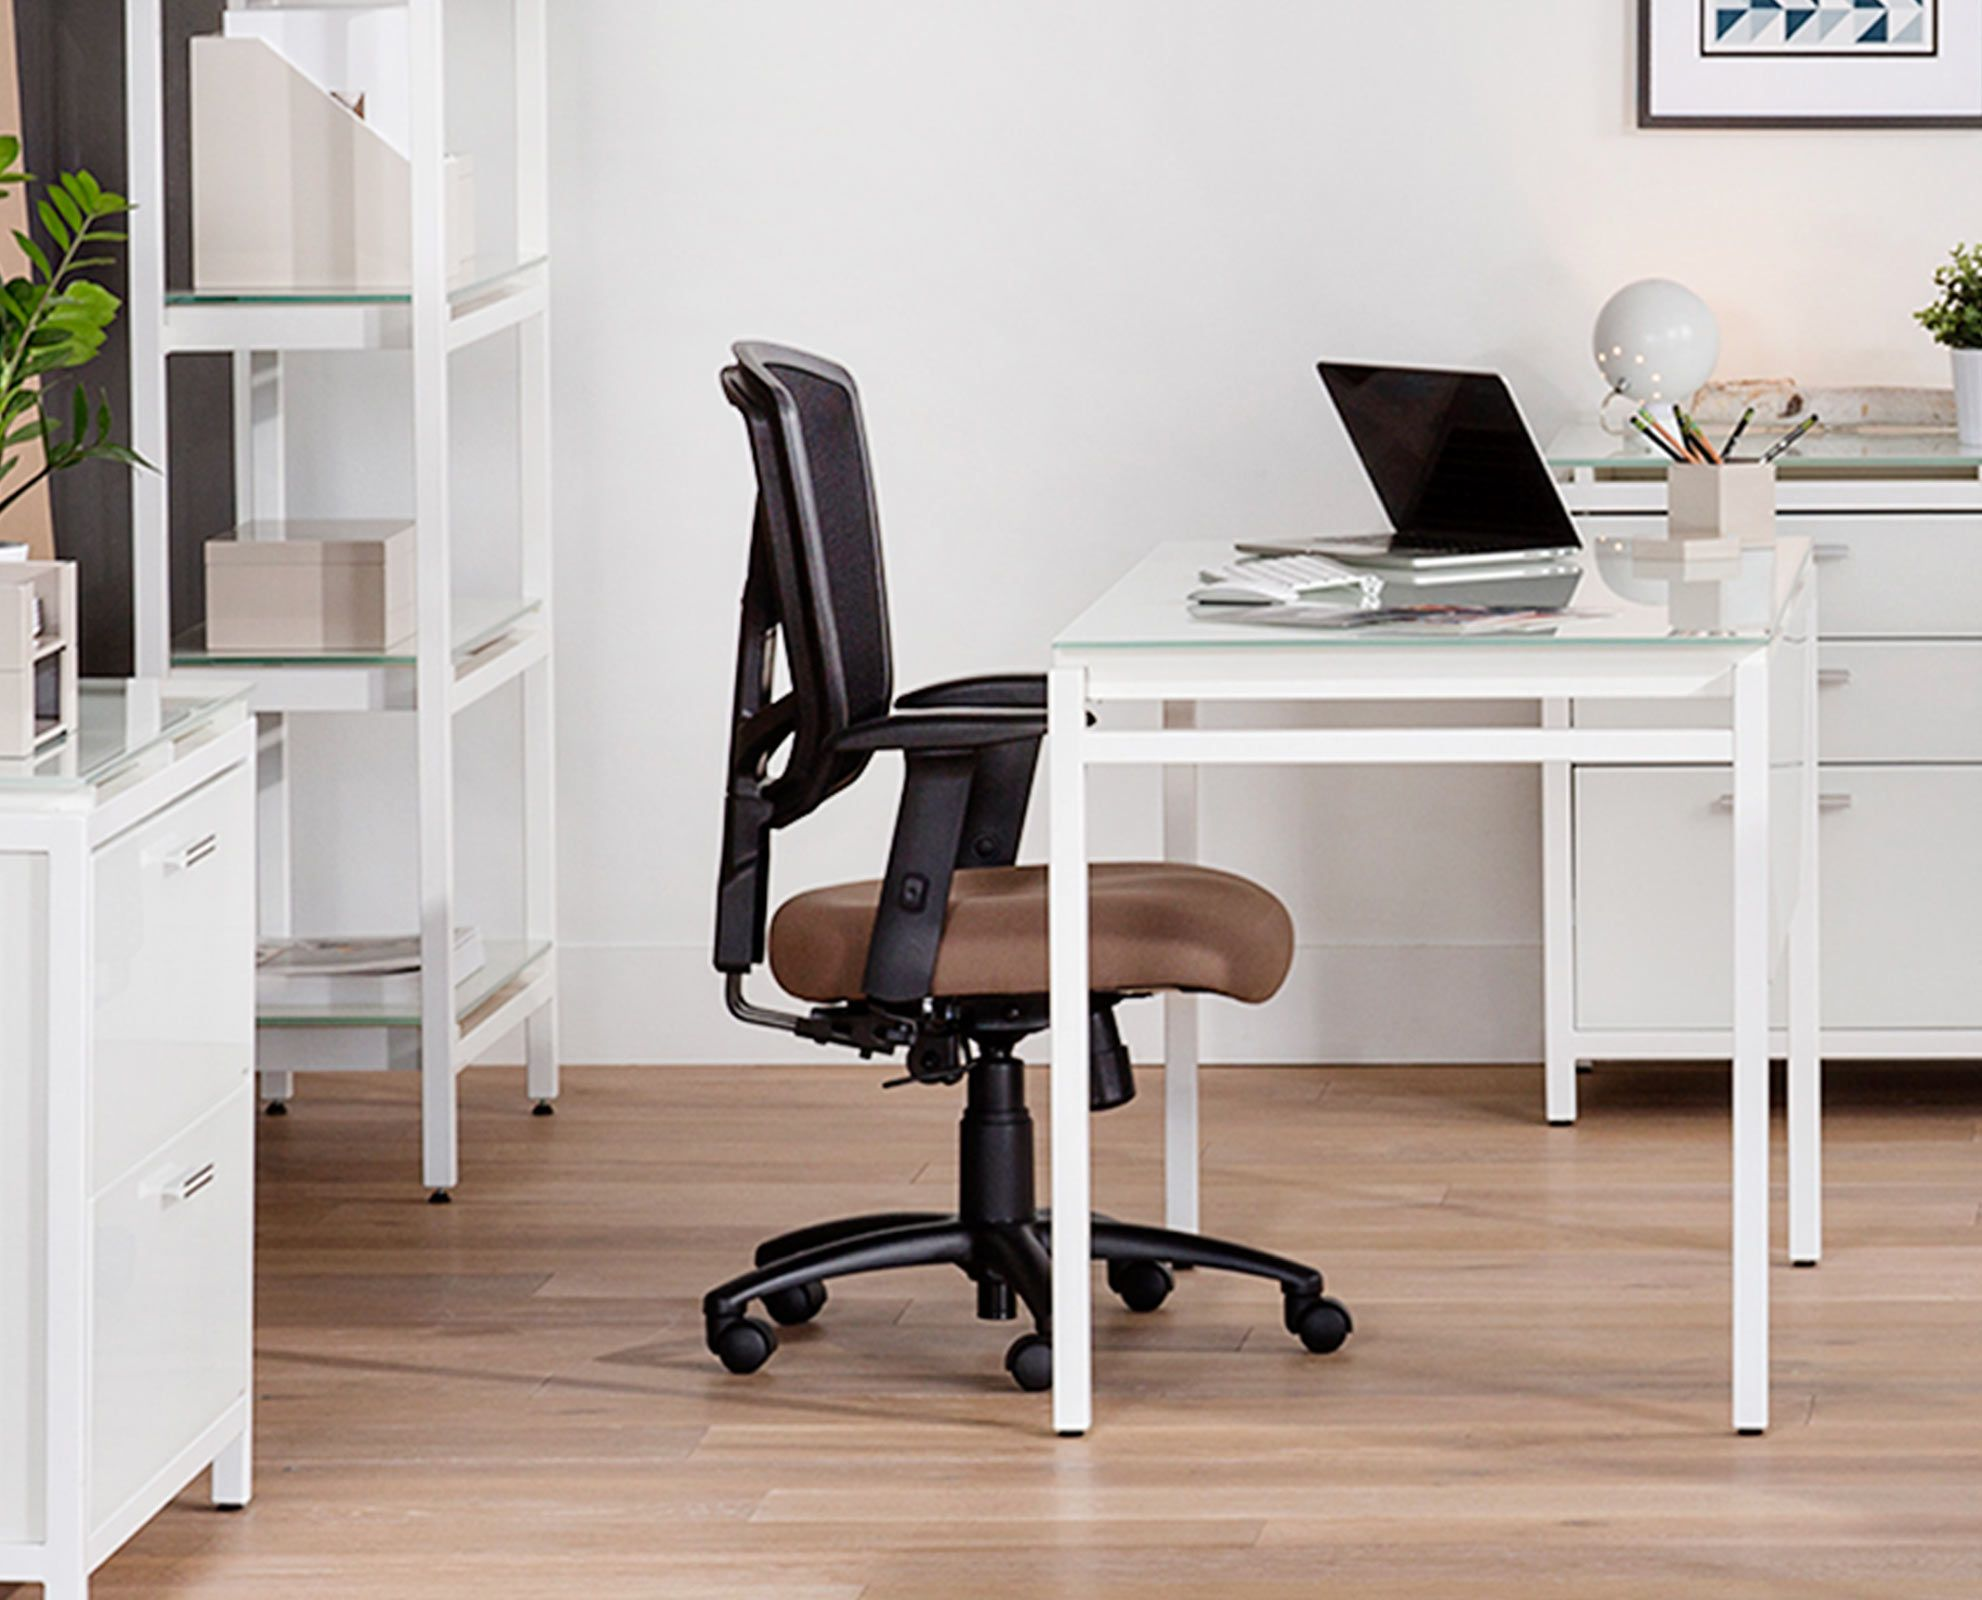 Scandinavian Designs Choose The Nova Small Desk To Brighten And Update Your Worksp Office Furniture Design Office Desk For Sale Scandinavian Office Furniture